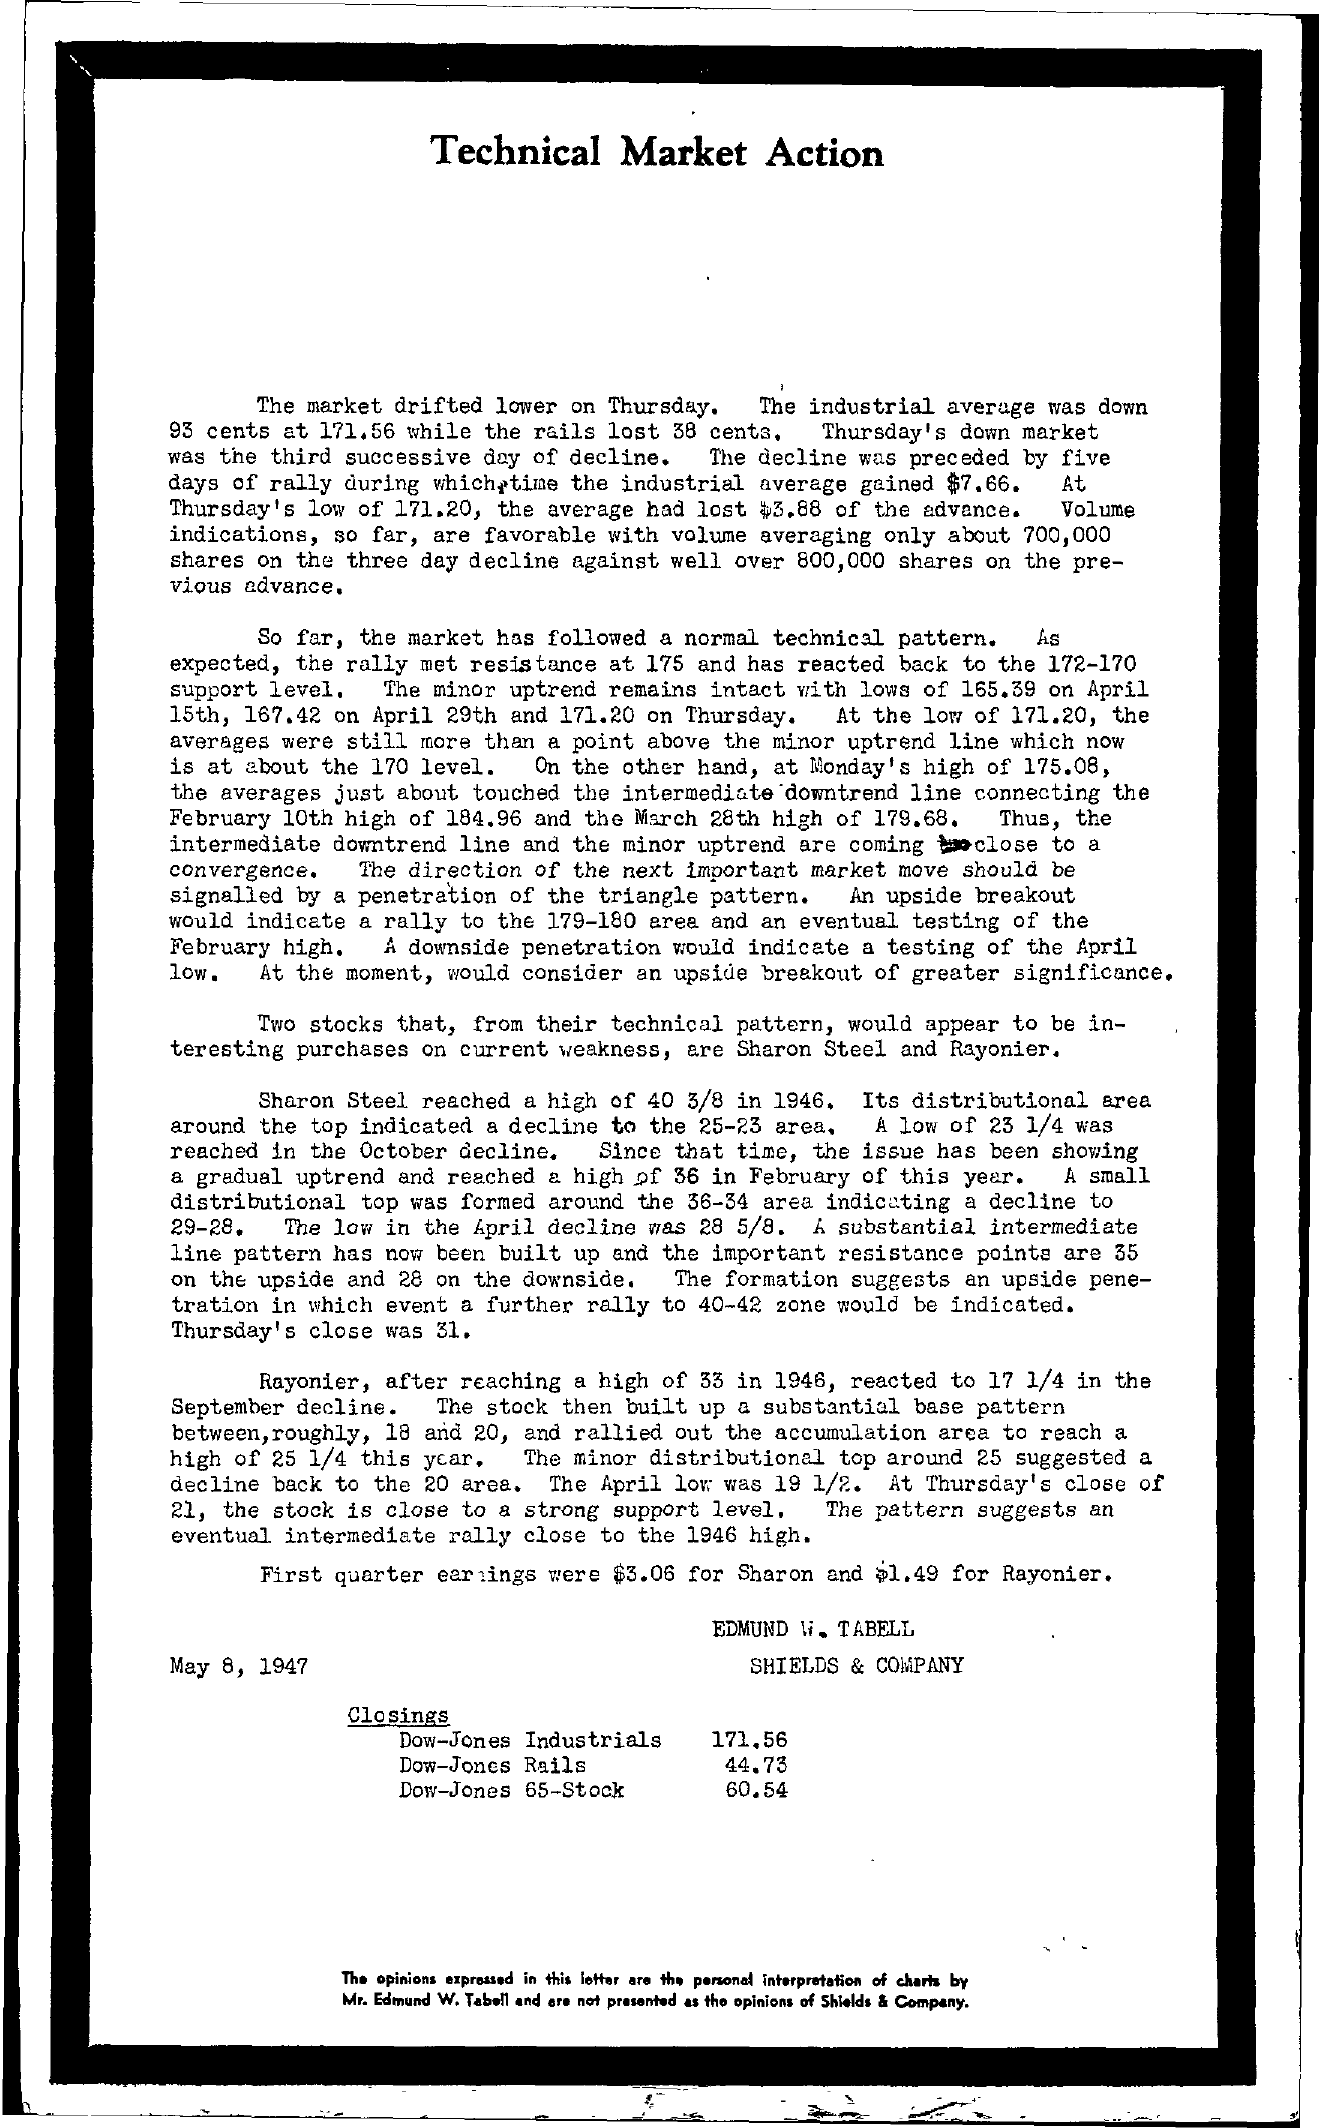 Tabell's Market Letter - May 08, 1947